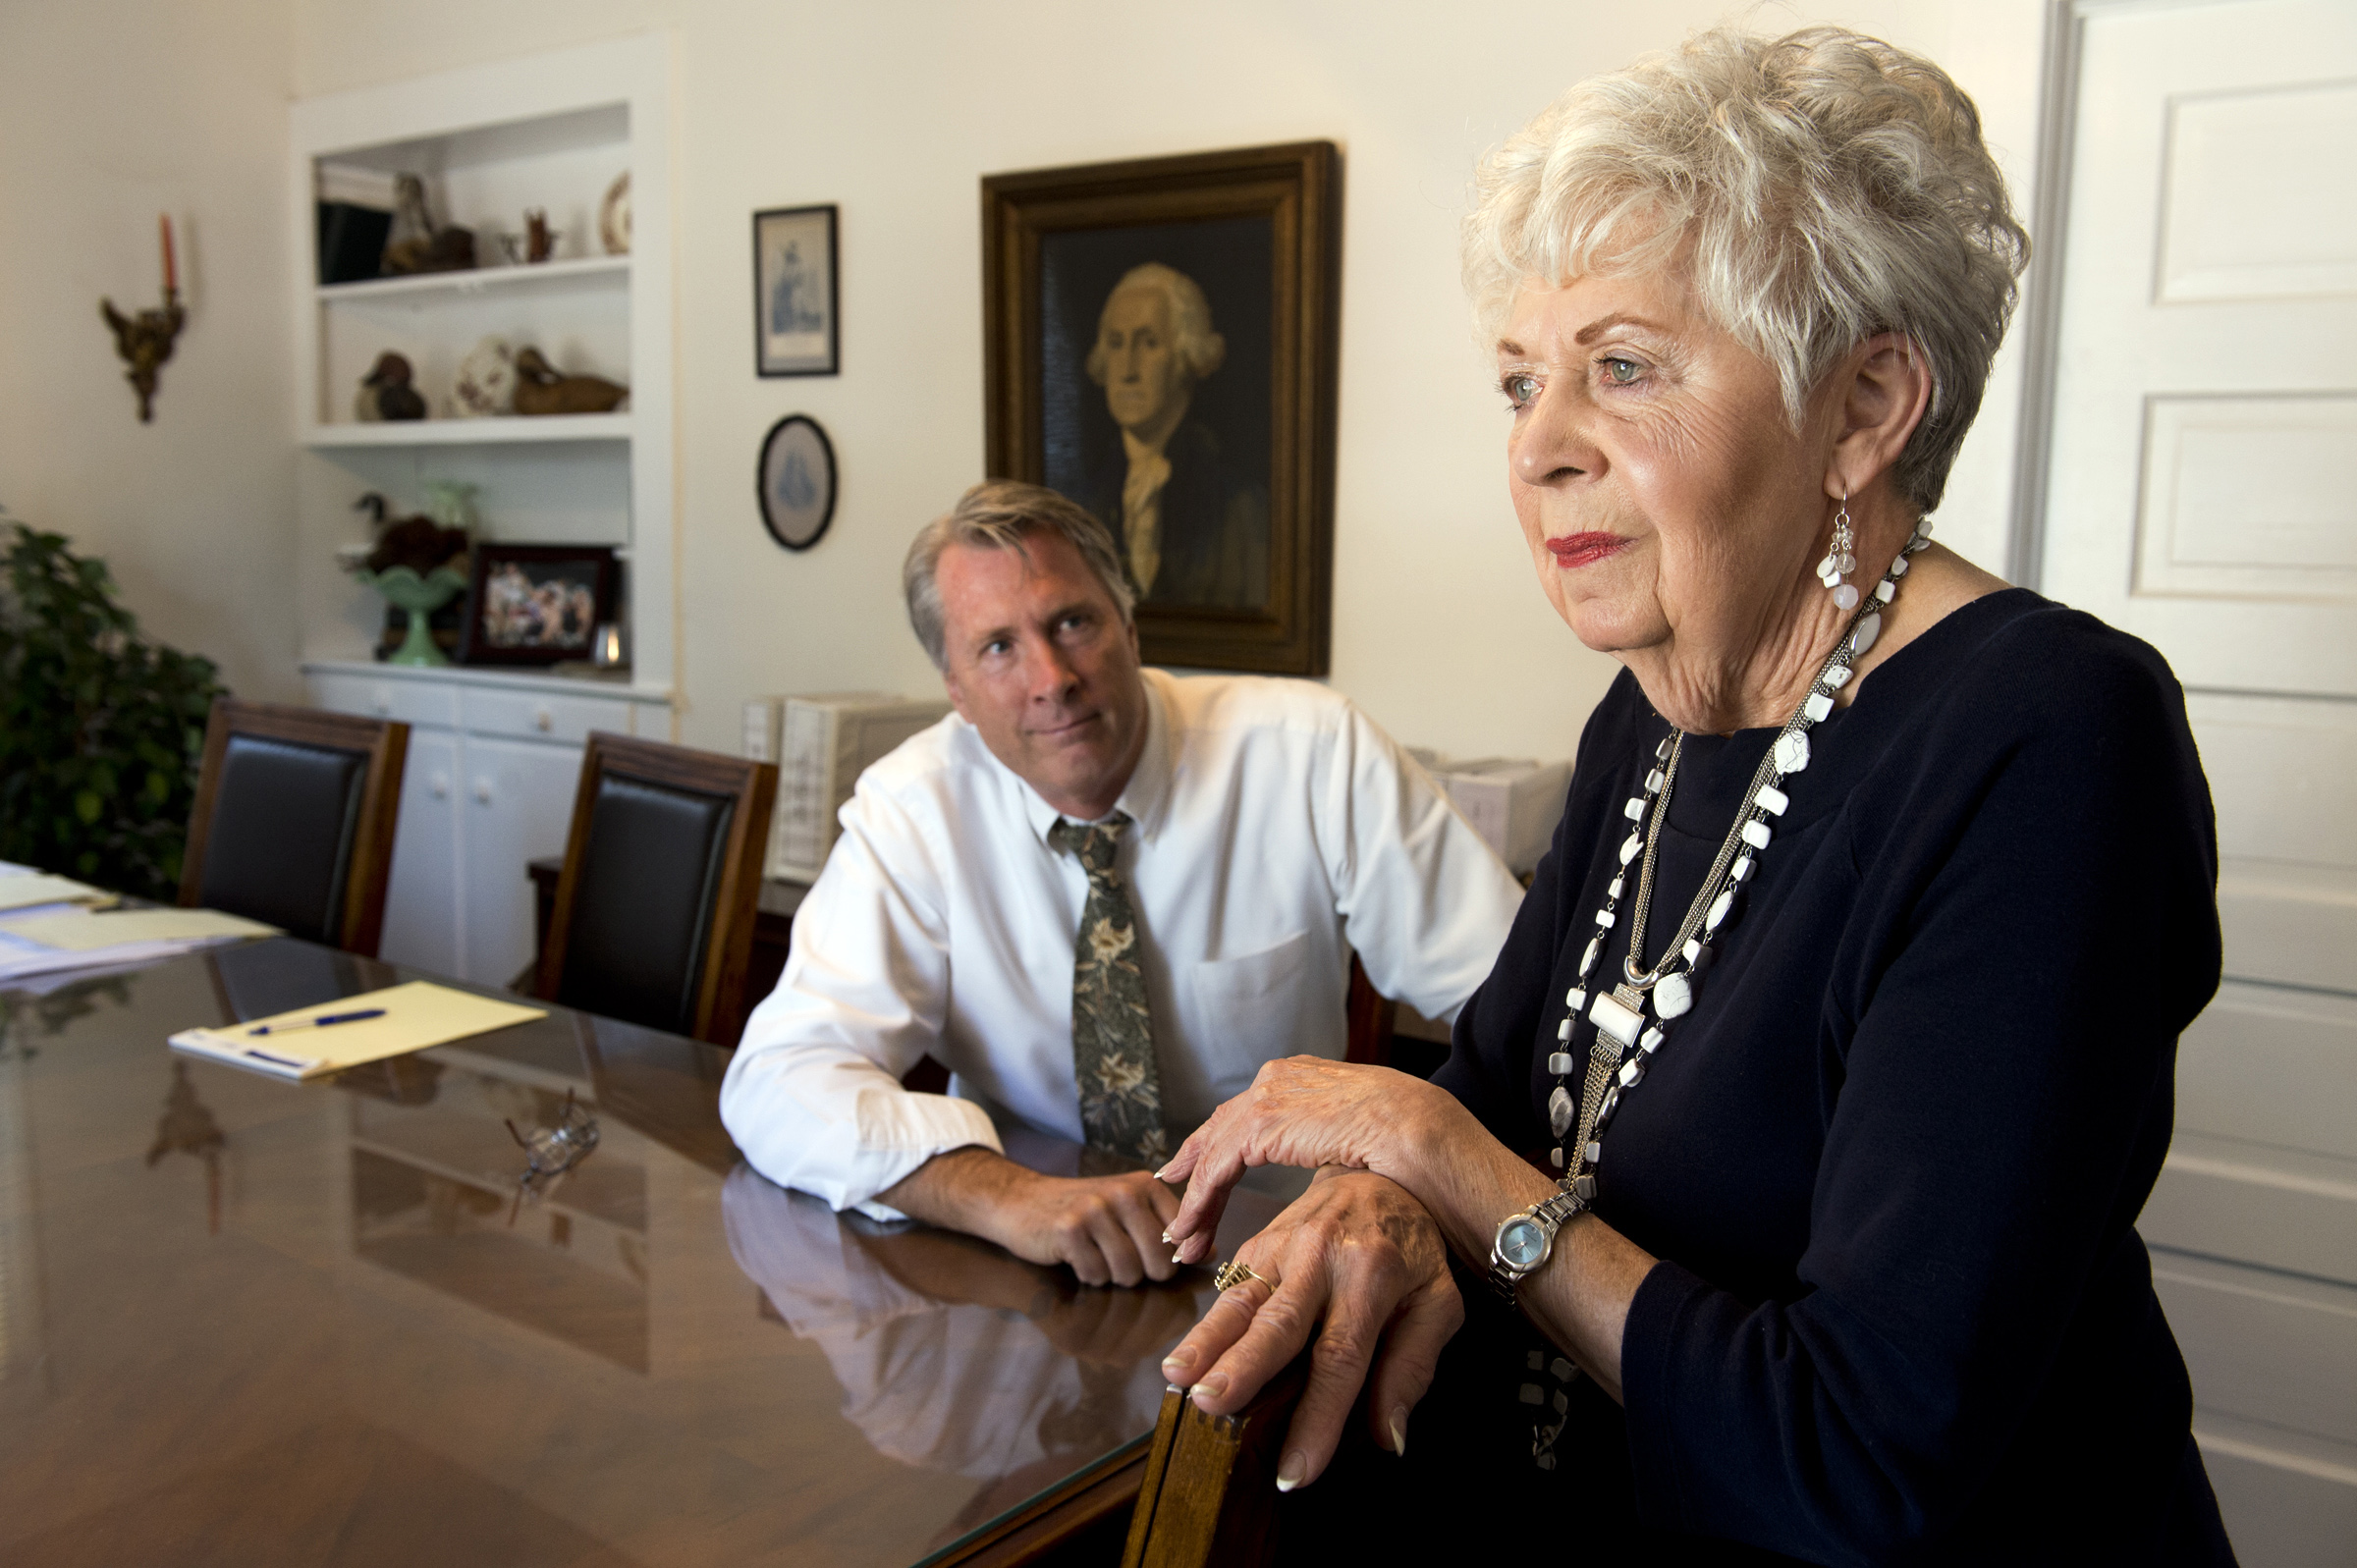 Attorney Joseph M. Earley III, left, represents Bonnie Nidiver, a longtime Butte County resident. After her husband died in 2011 following a stay at a Paradise nursing home, the widow was reluctant to file a lawsuit, but said she proceeded in the hope of helping others.